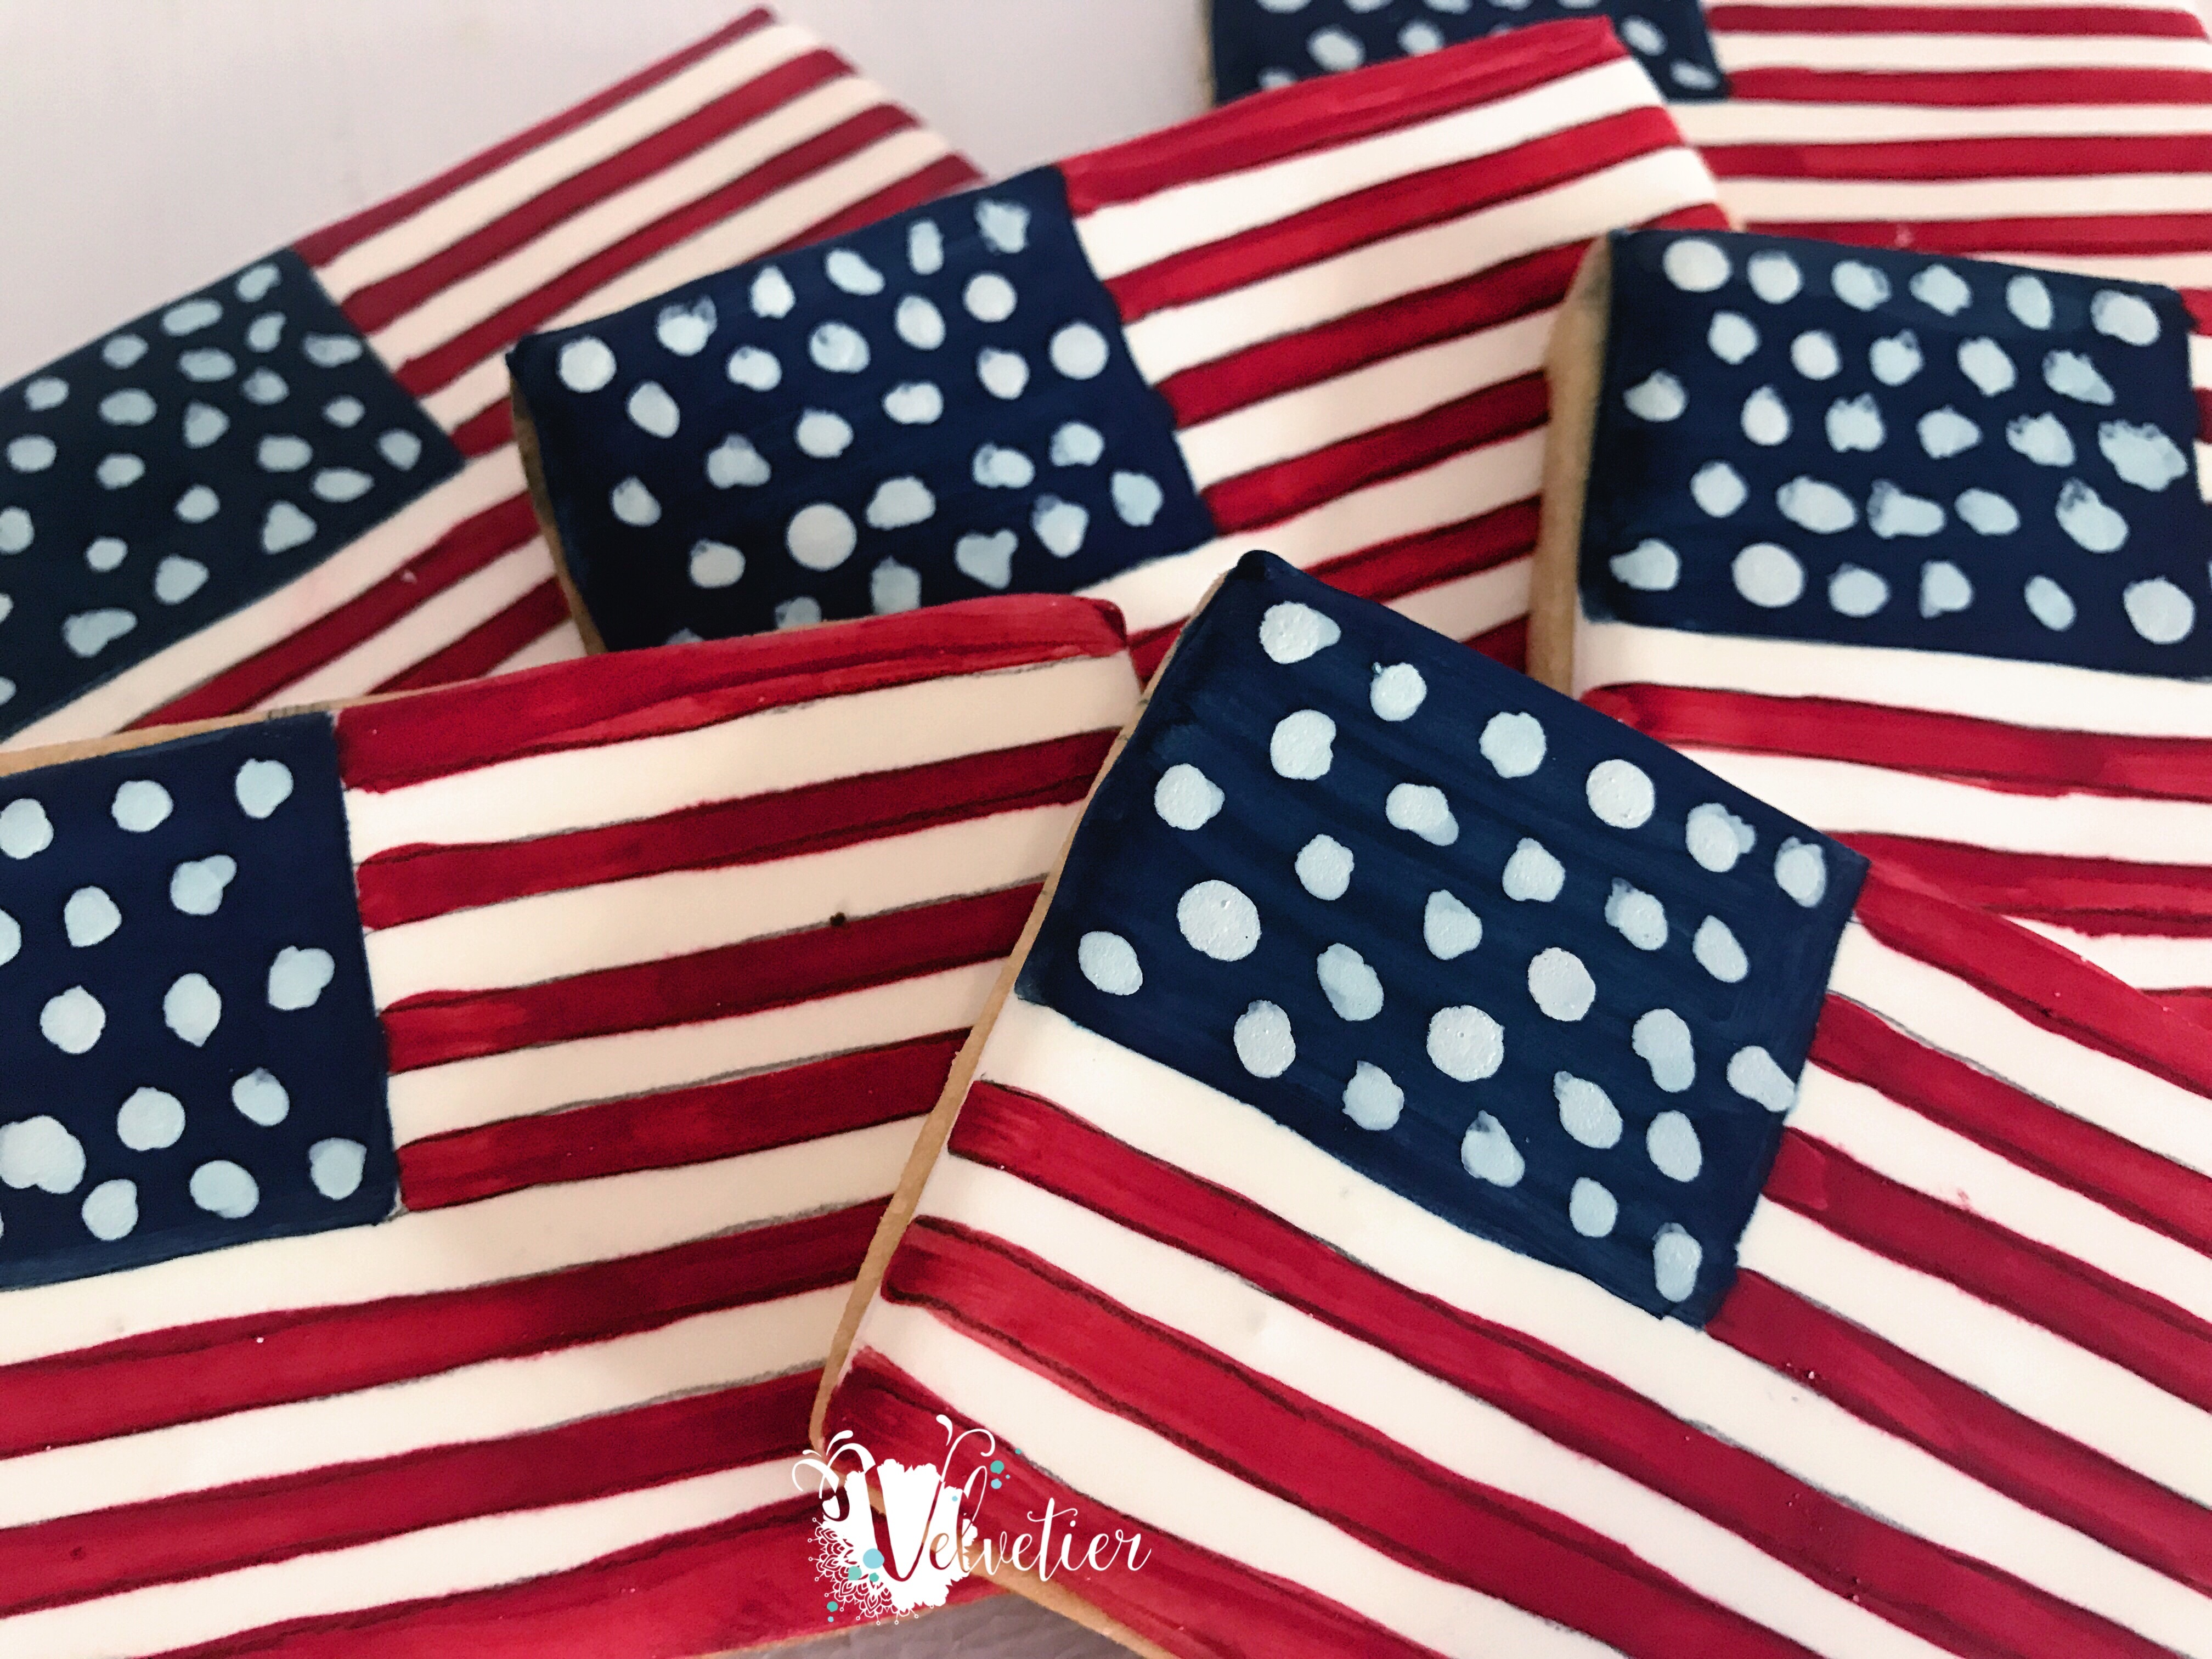 American flag cookies by velvetier brisbane usa flag